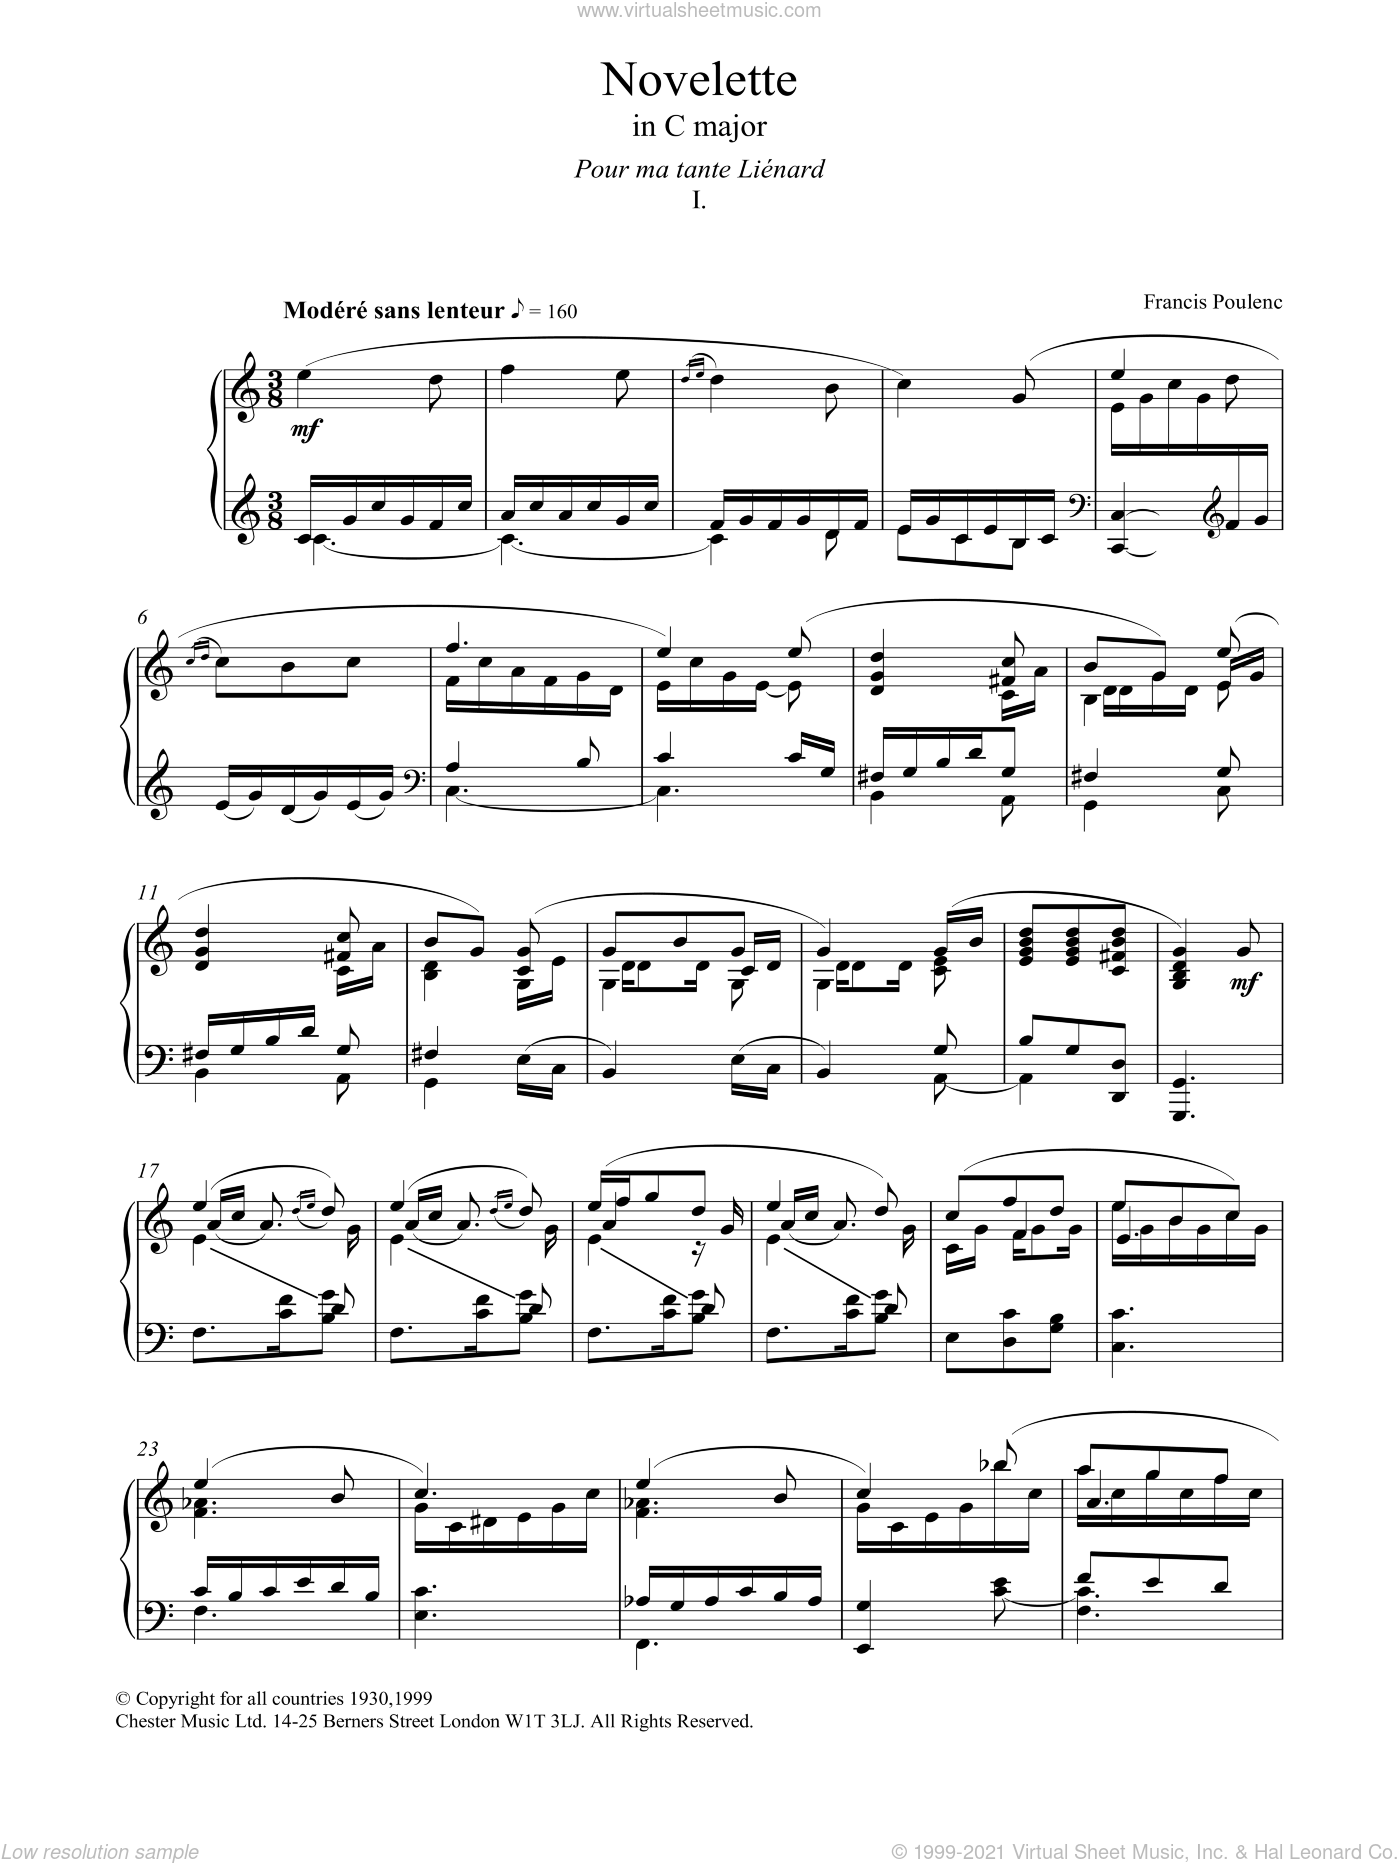 Novelette In C Major, I sheet music for piano solo by Francis Poulenc